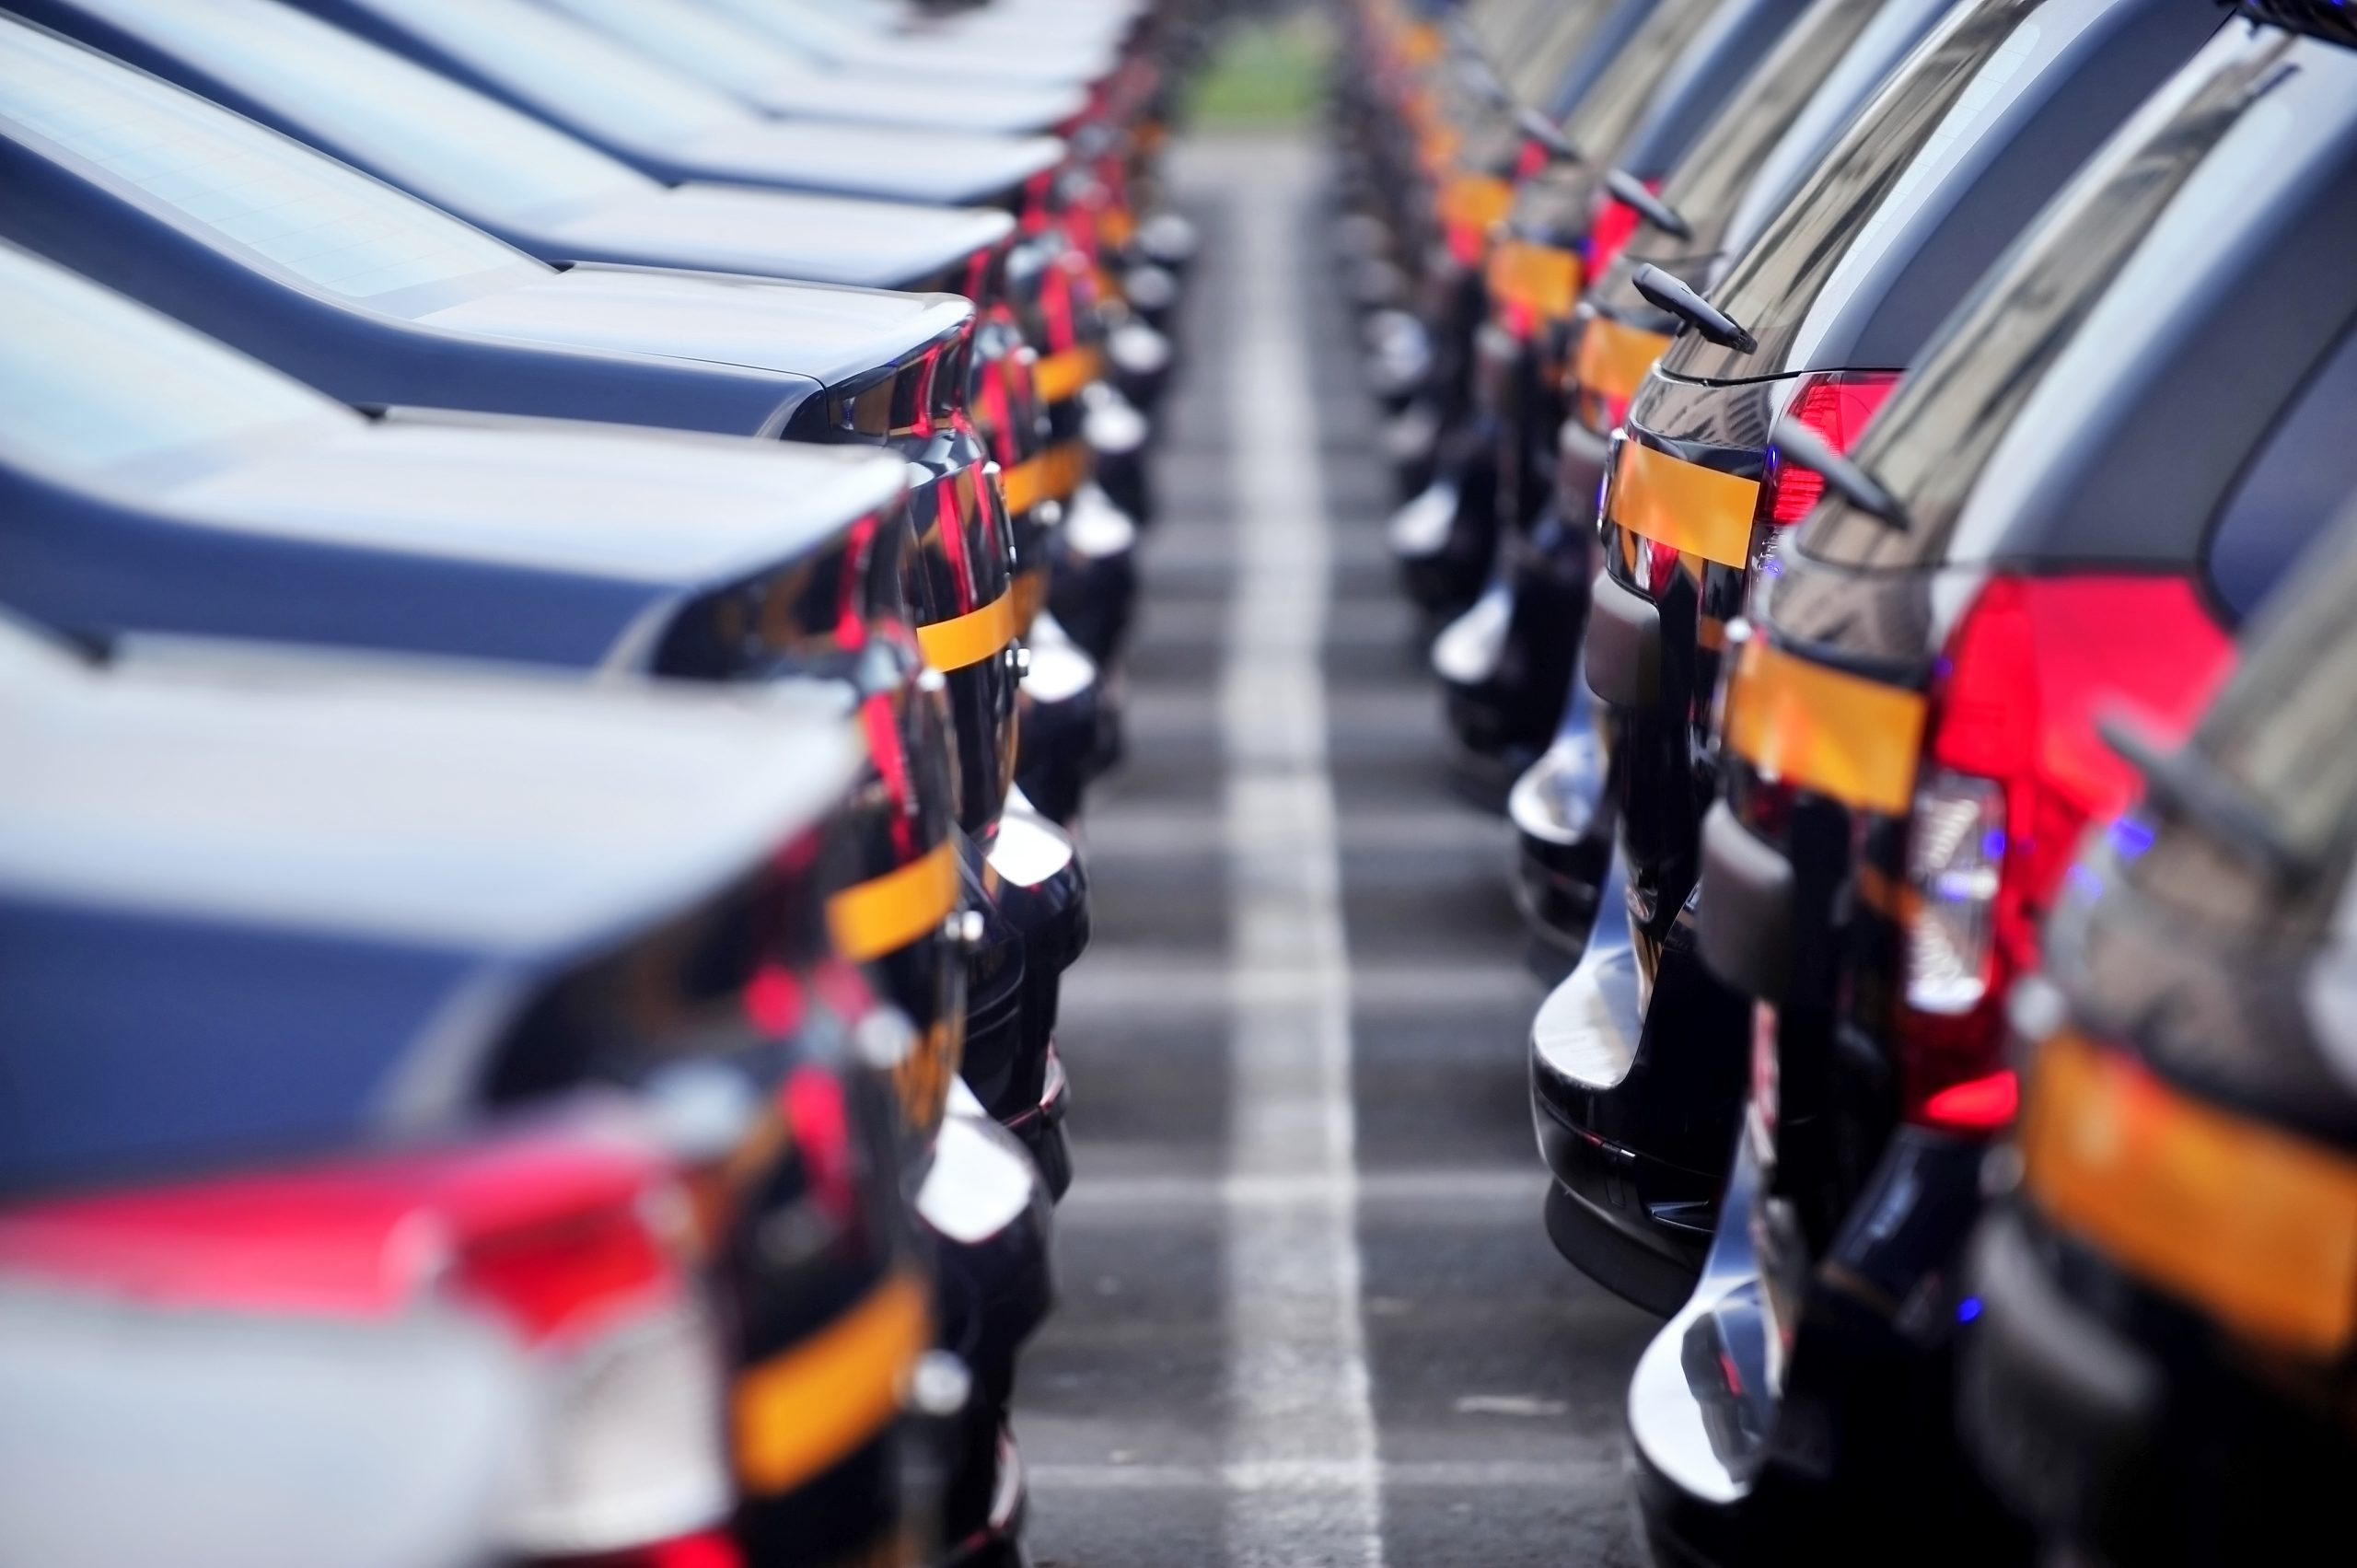 Rejecting a car: What are my consumer rights?